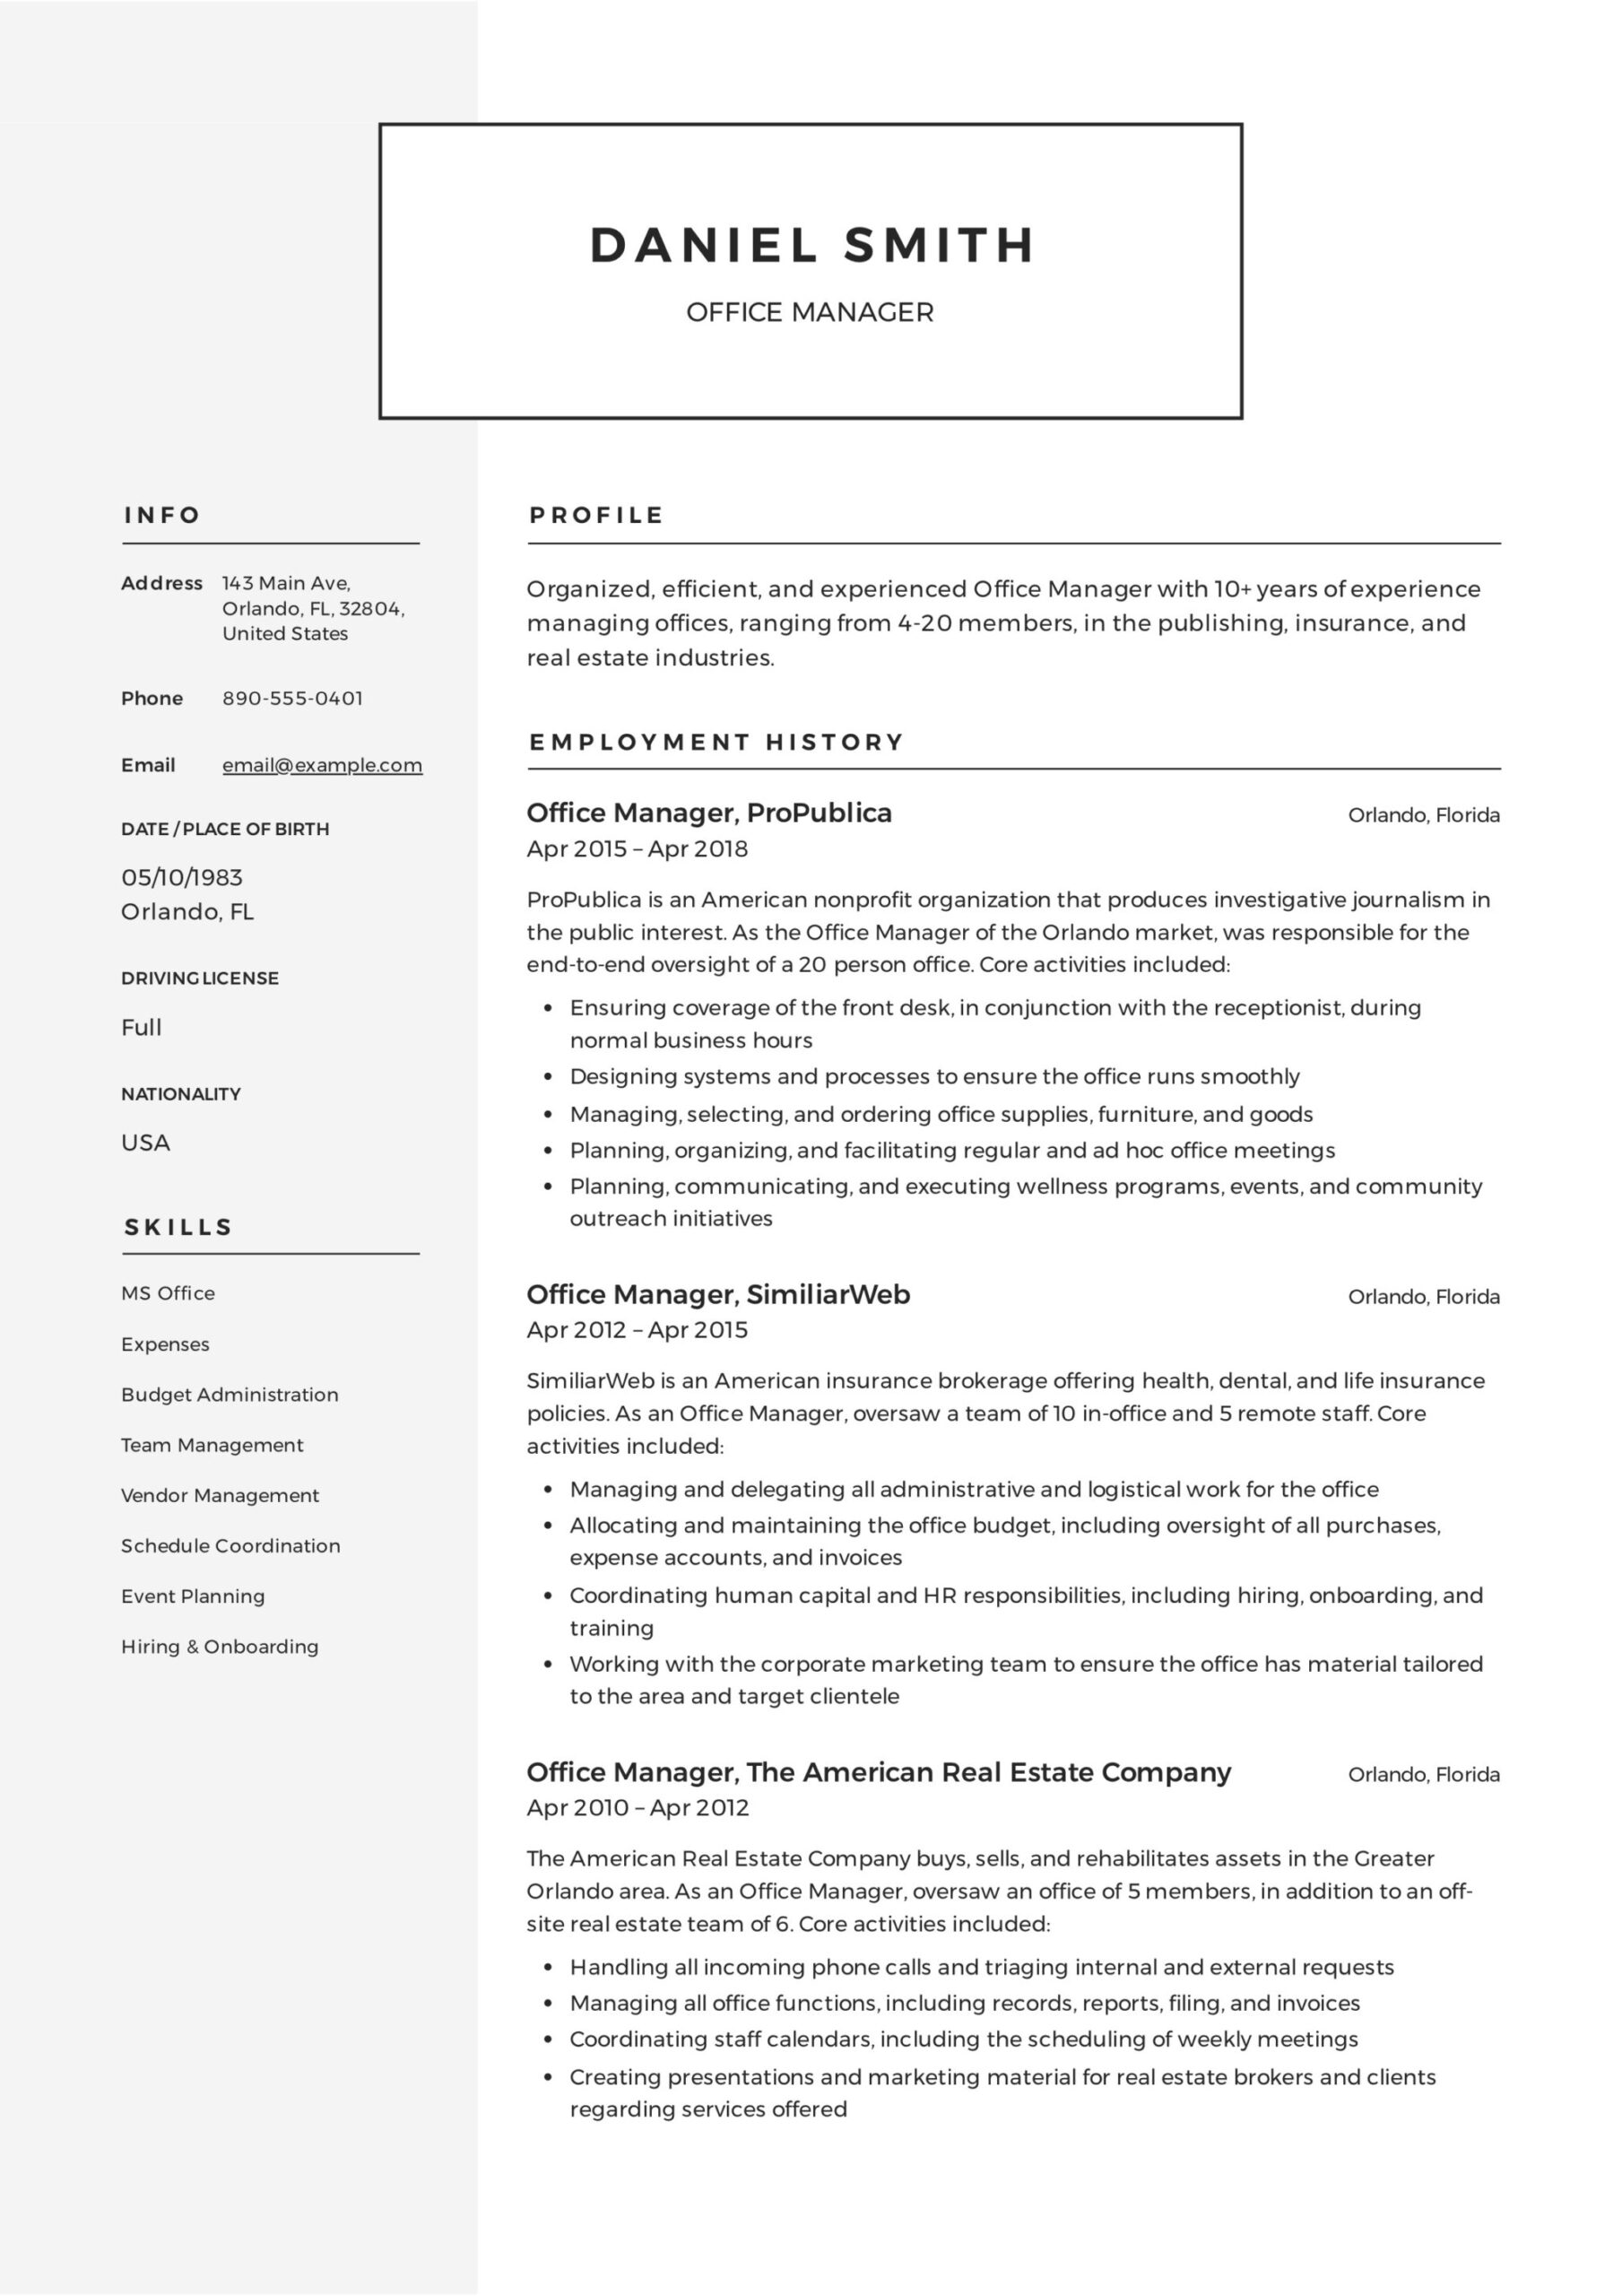 office manager resume guide samples pdf business sample summary for engineering students Resume Business Office Manager Resume Sample